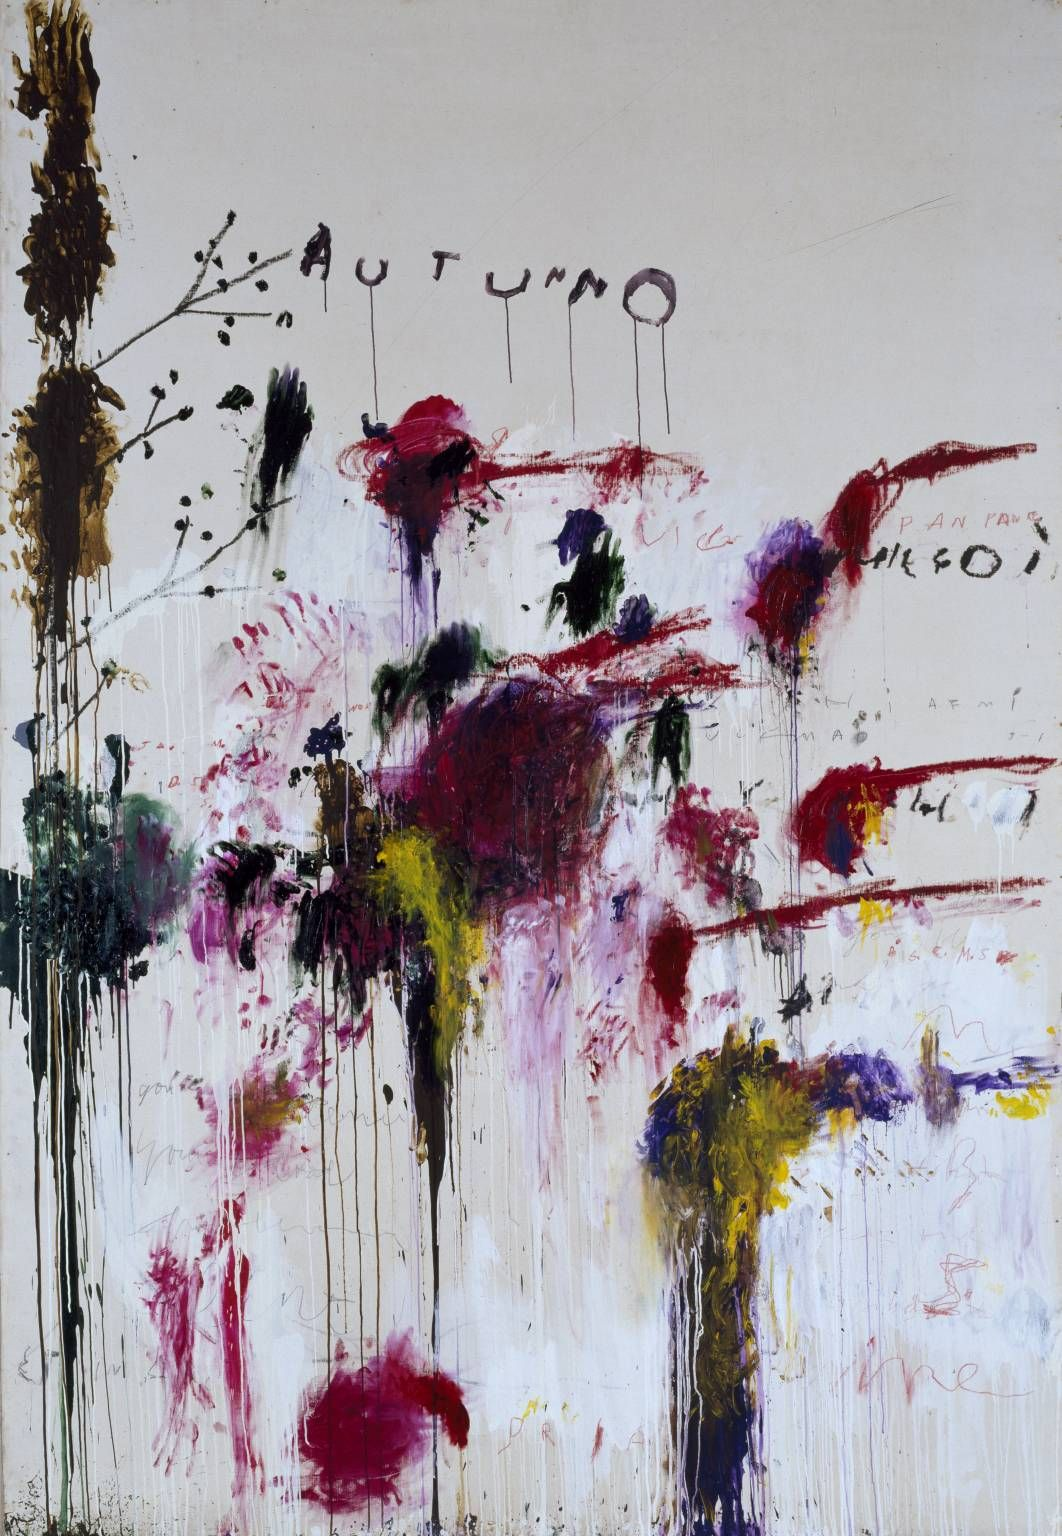 Cy Twombly, Quattro Stagioni: Autunno, from Quattro Stagioni (A Painting in Four Parts), 1993-5, Tate Gallery, London